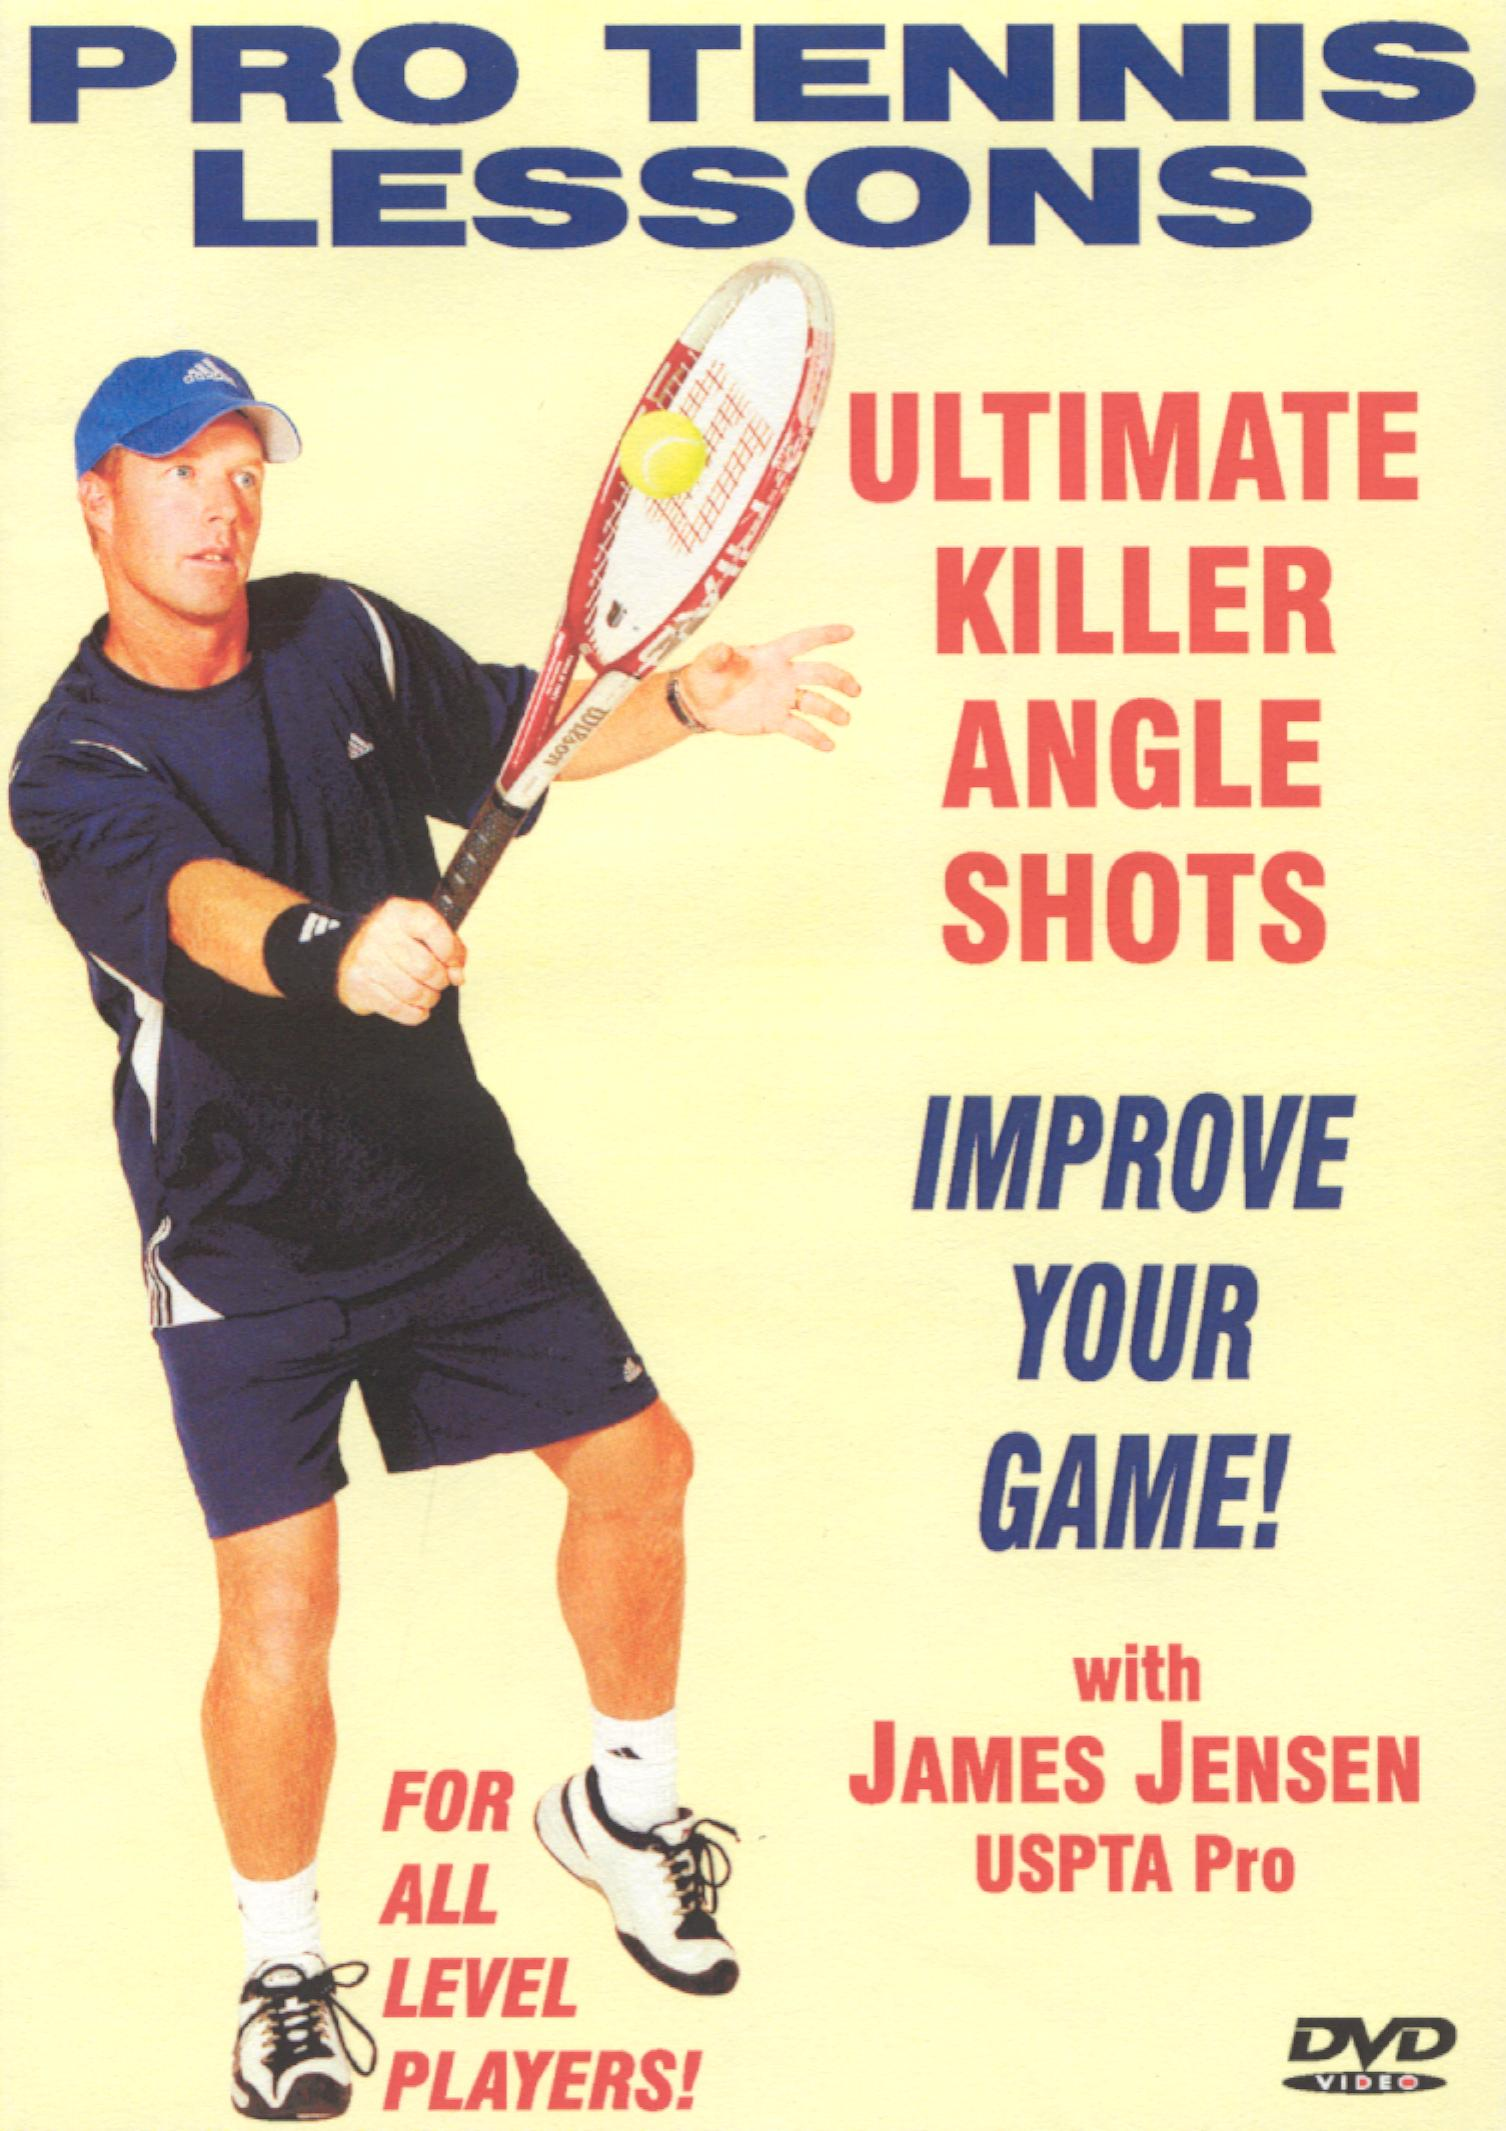 Pro Tennis Lessons: Ultimate Killer Angle Shots